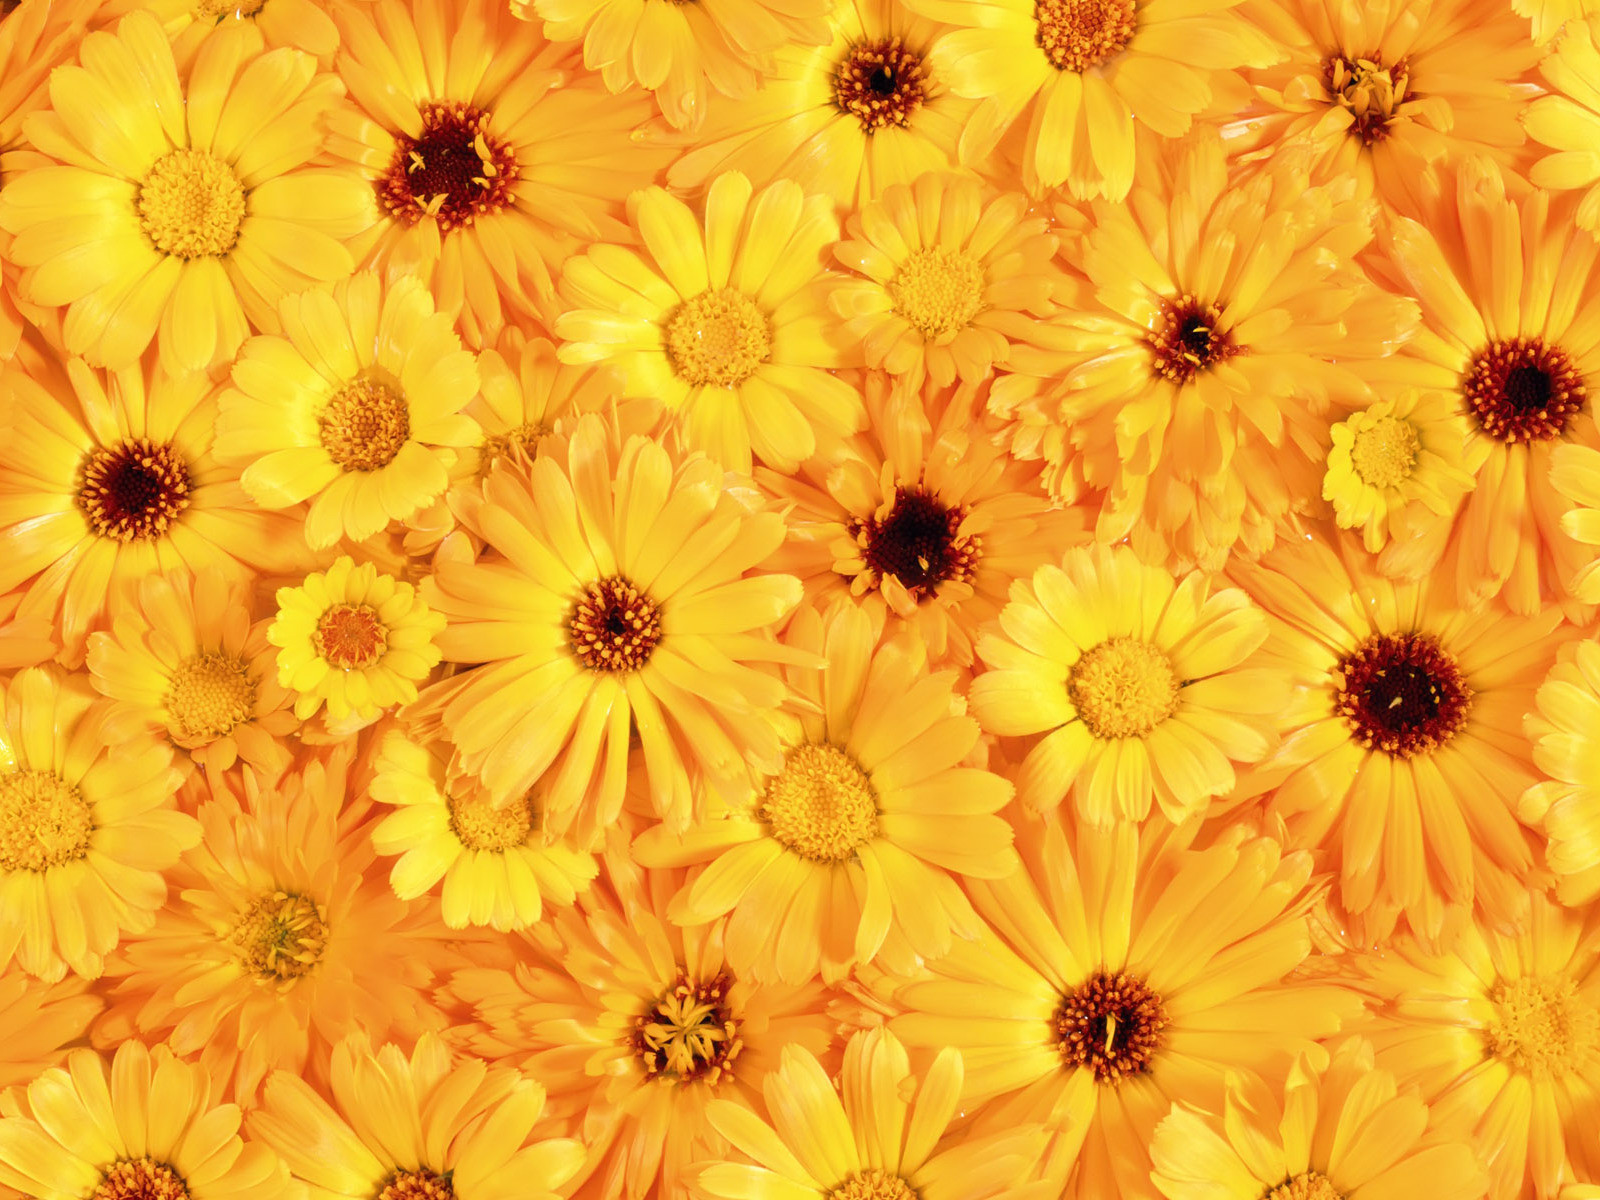 yellow flowers, texture, flowers, flower background, flower texture